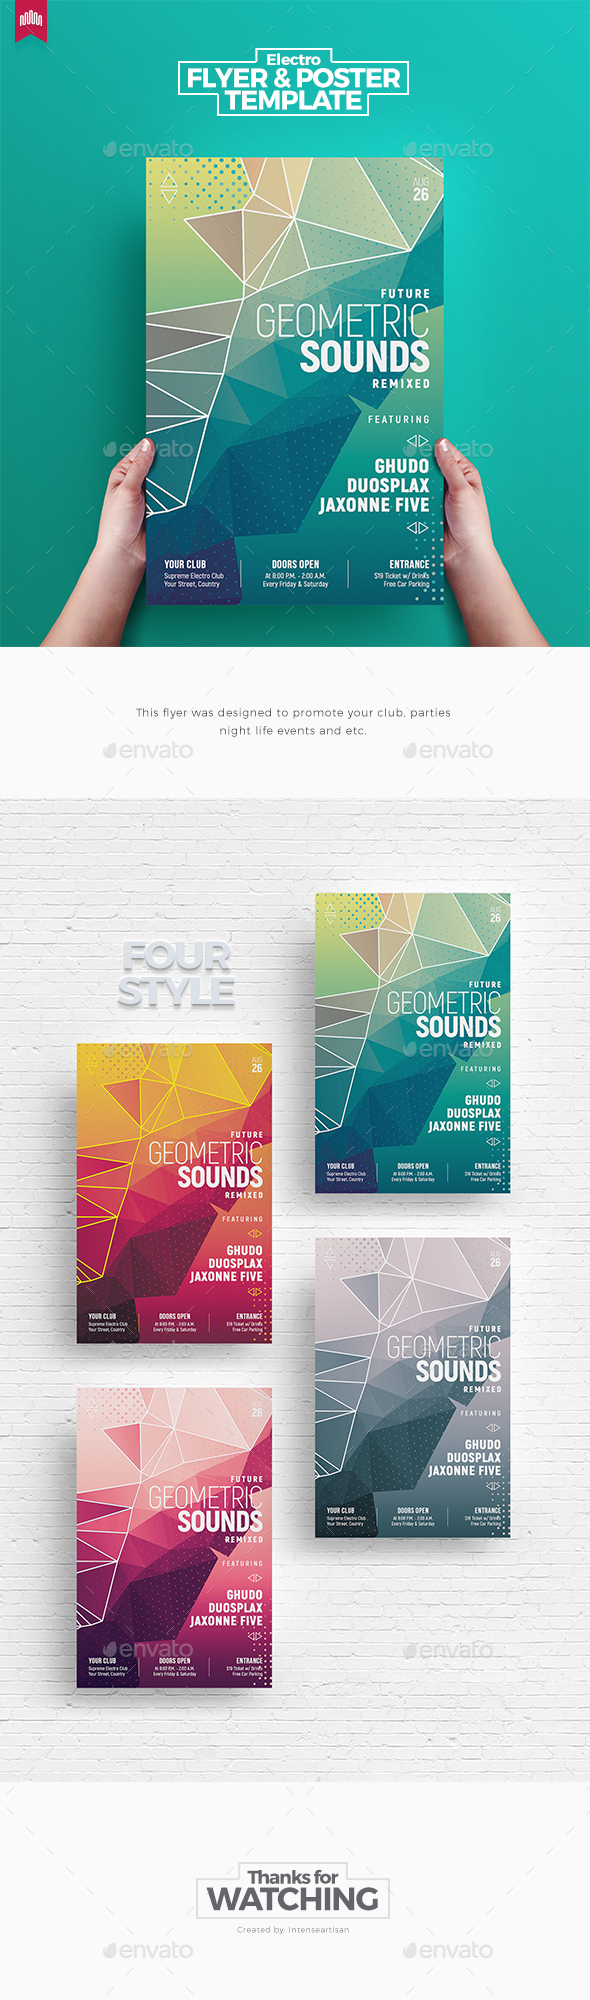 Geometric Sounds - Flyer Template - Clubs & Parties Events